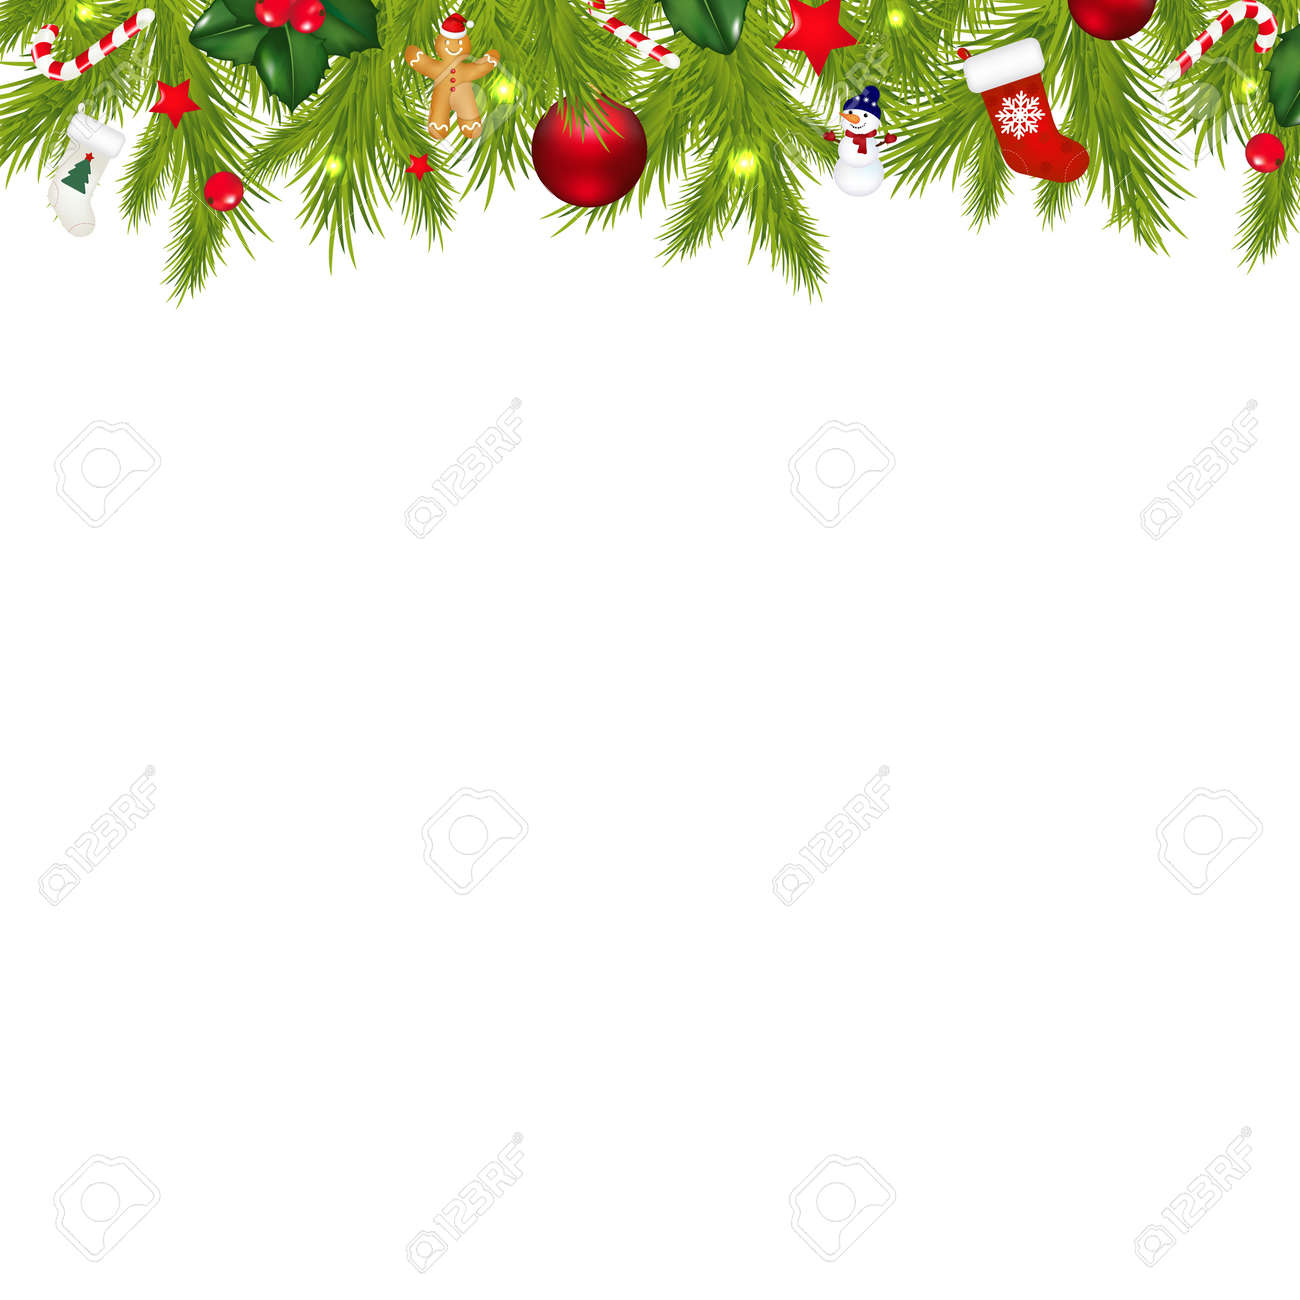 Christmas Border With Xmas Garland Isolated On White Background Gradient Mesh Stock Vector